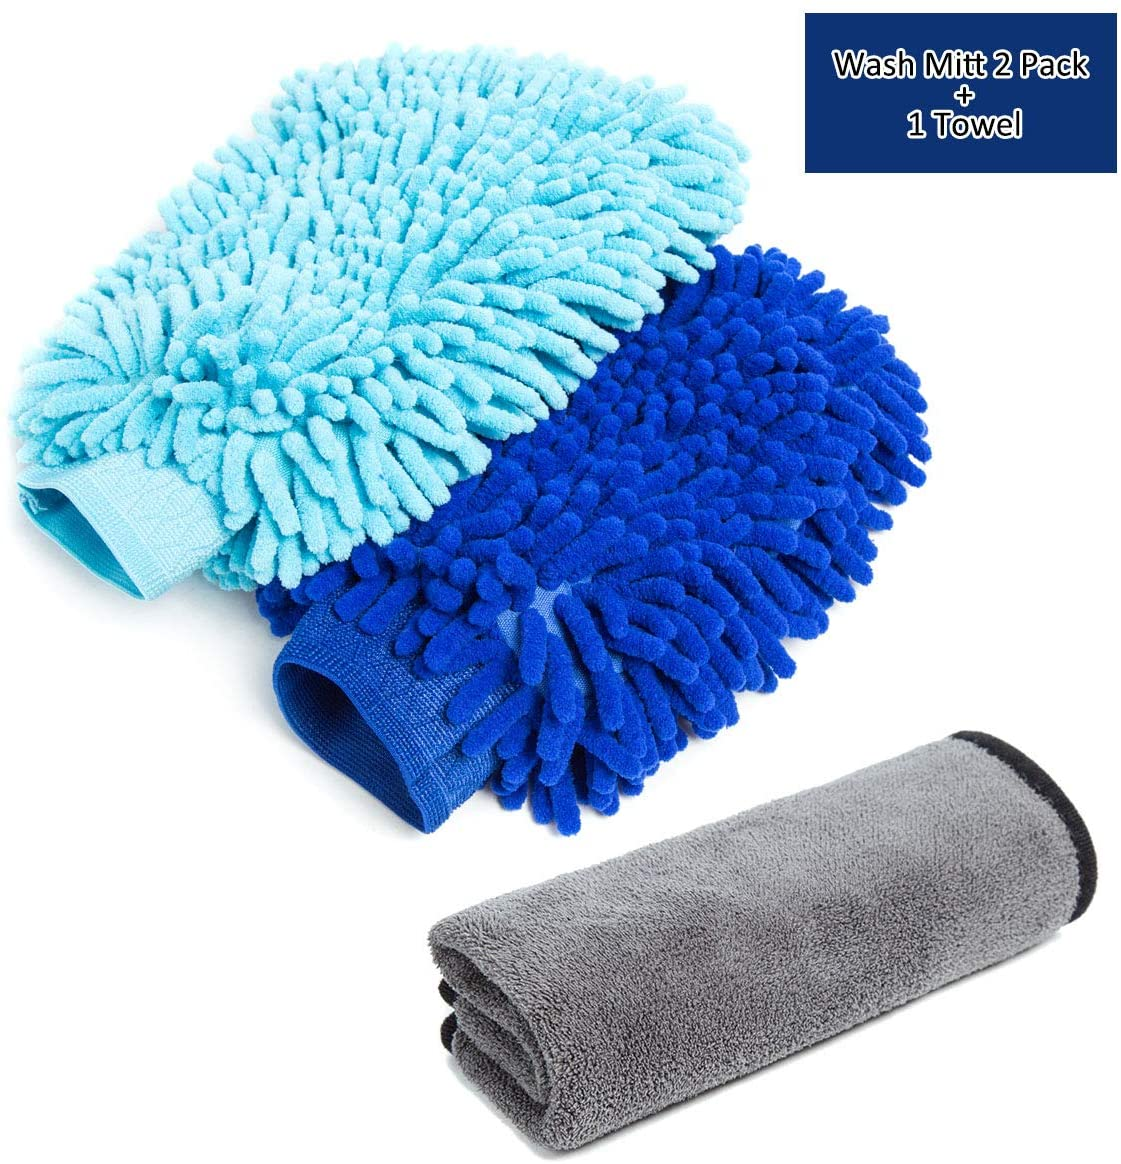 LUITON Car Wash Mitt - 2 Pack Extra Large Size 1 Towel - Premium Chenille Microfiber Wash Mitt - Wash Glove - Lint Free - Scratch Free